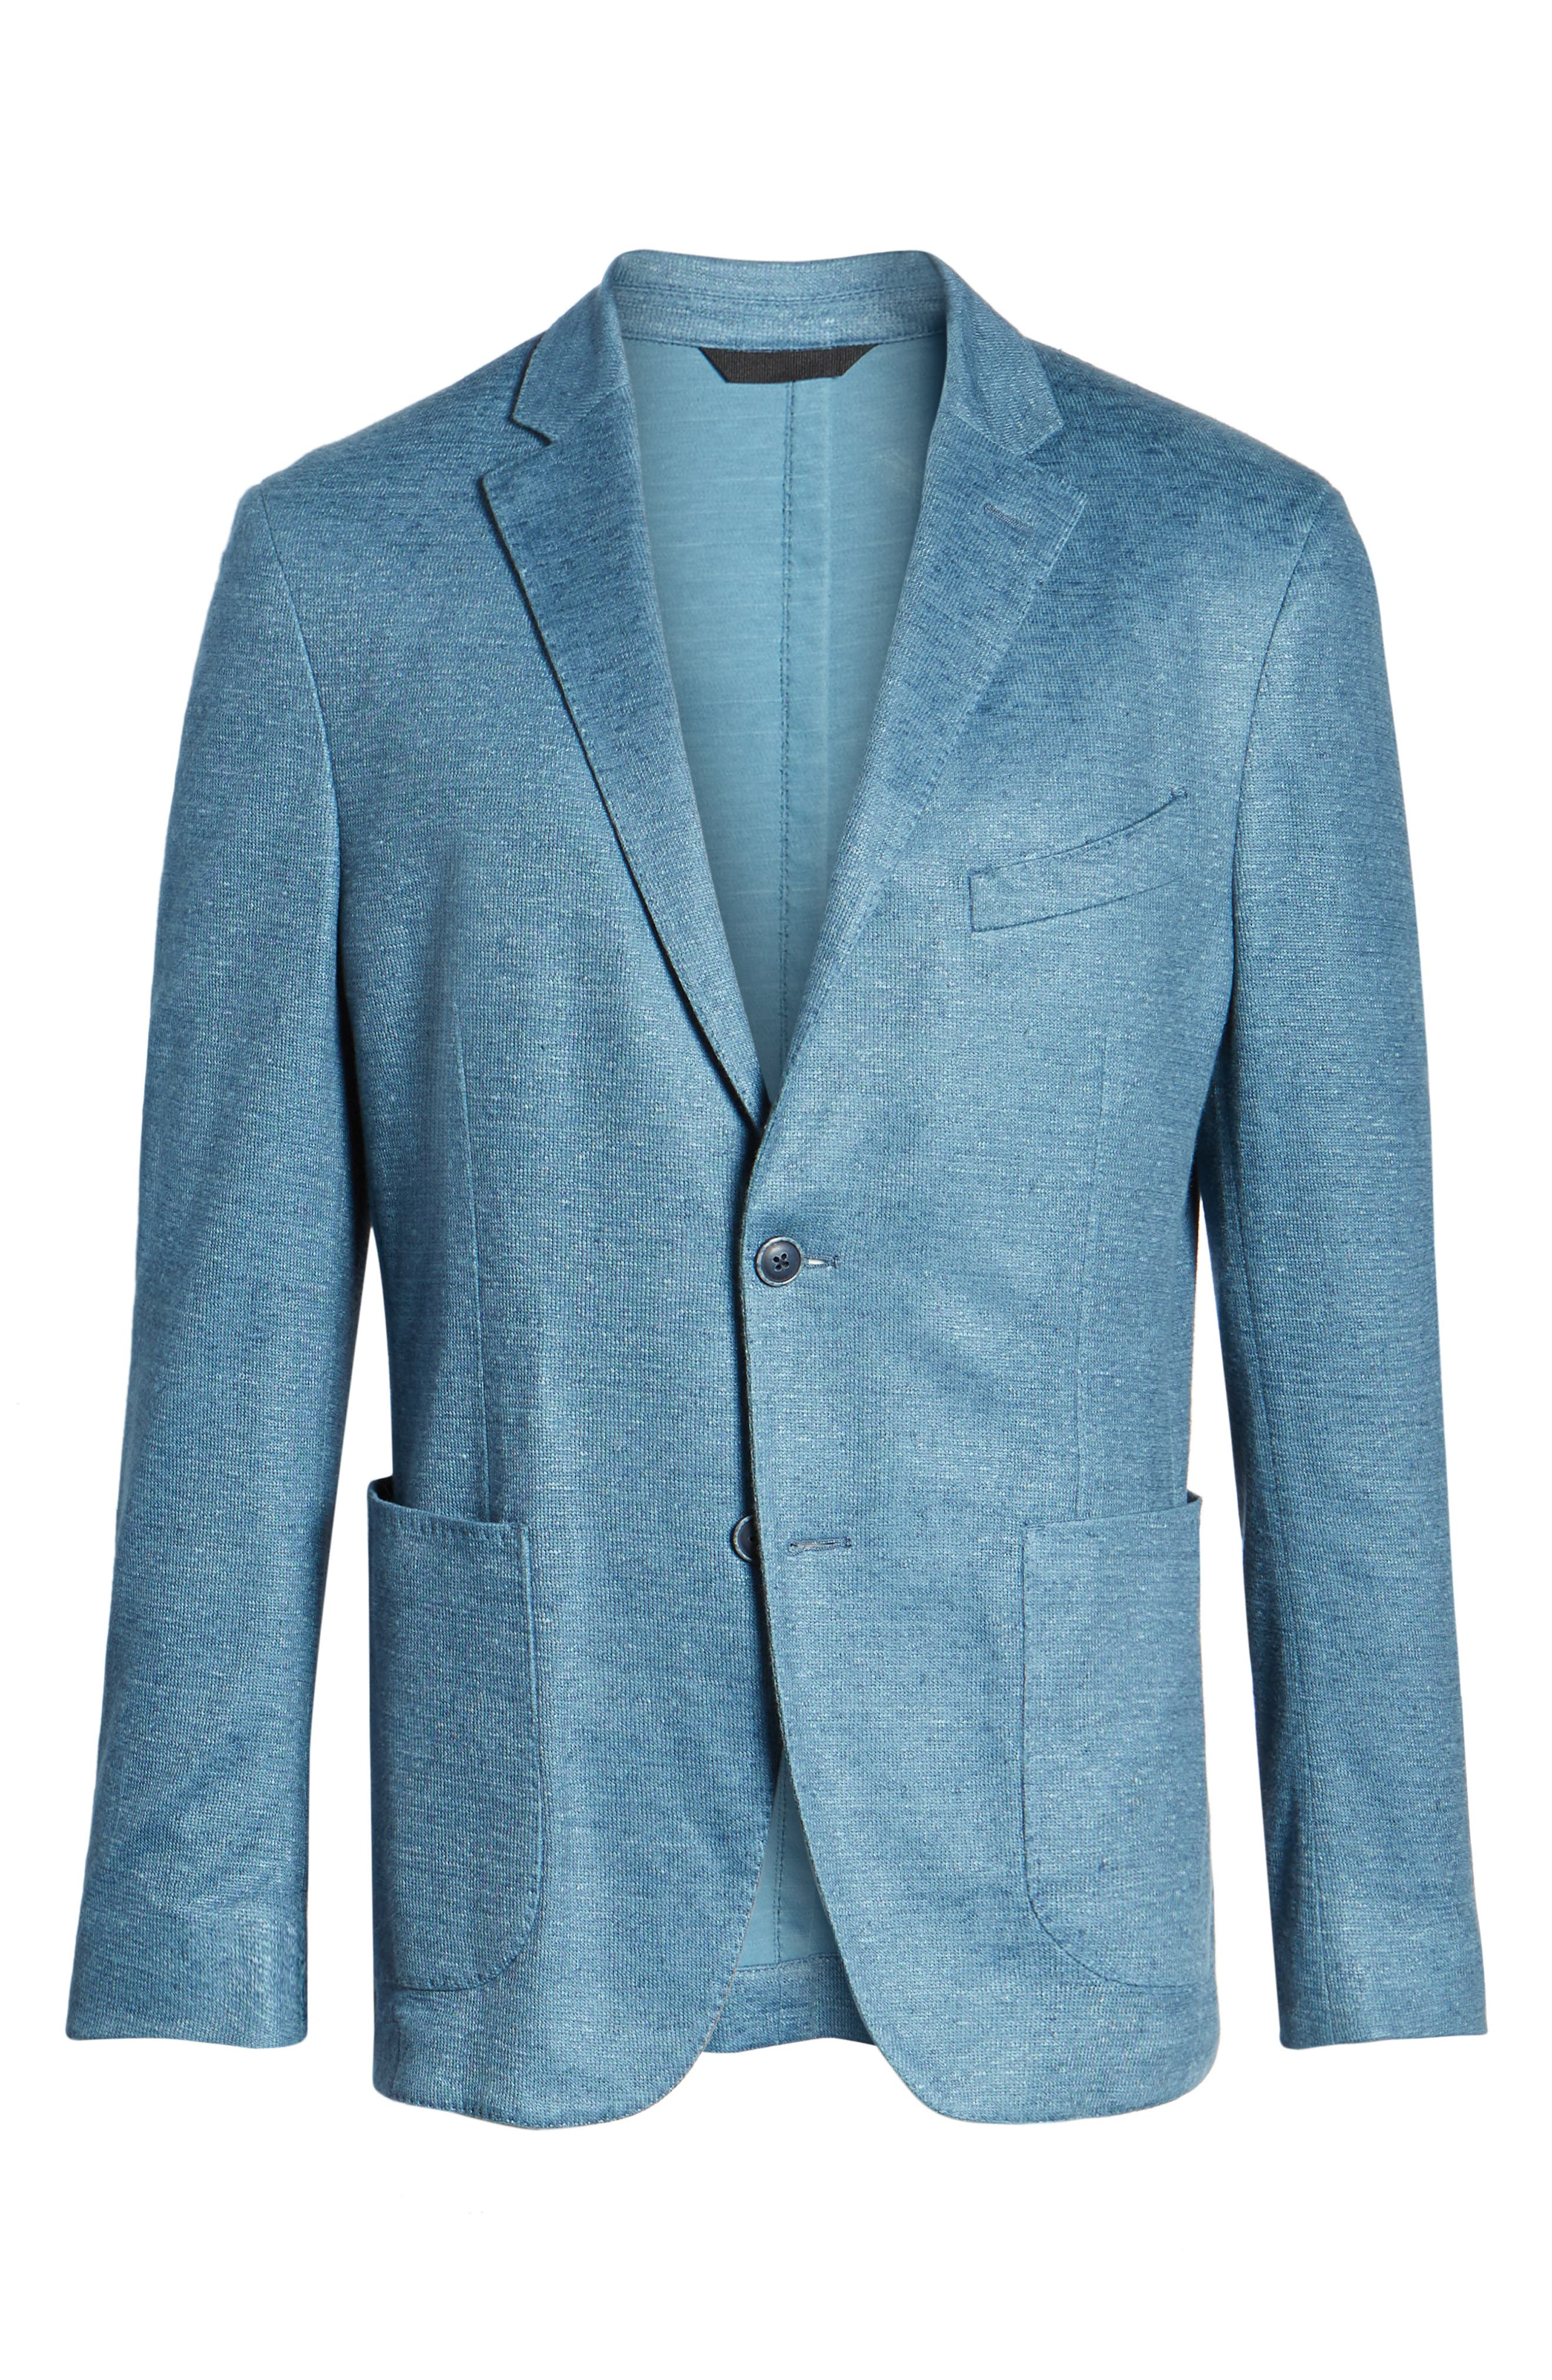 Trim Fit Heathered Jersey Blazer,                             Alternate thumbnail 5, color,                             420